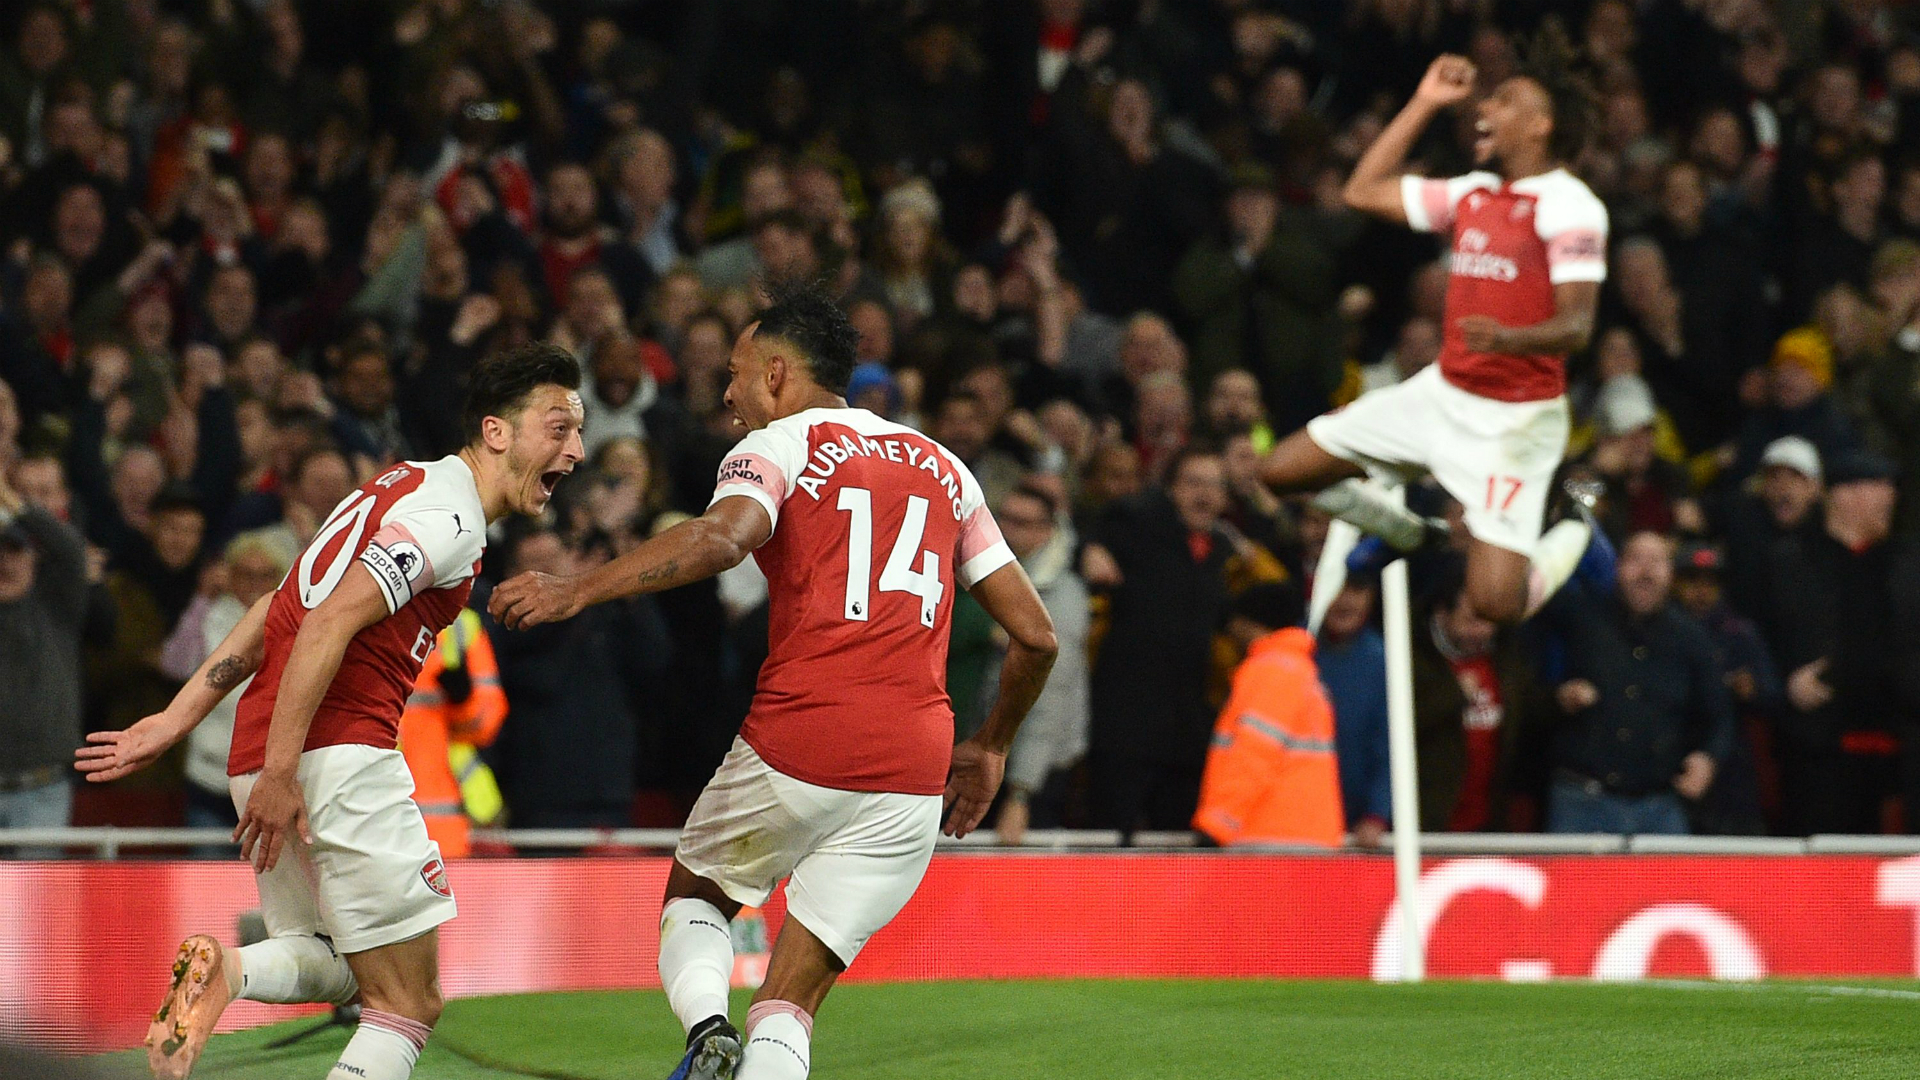 Mesut Ozil, Pierre-Emerick Aubameyang, Alex Iwobi - Arsenal vs. Leicester City